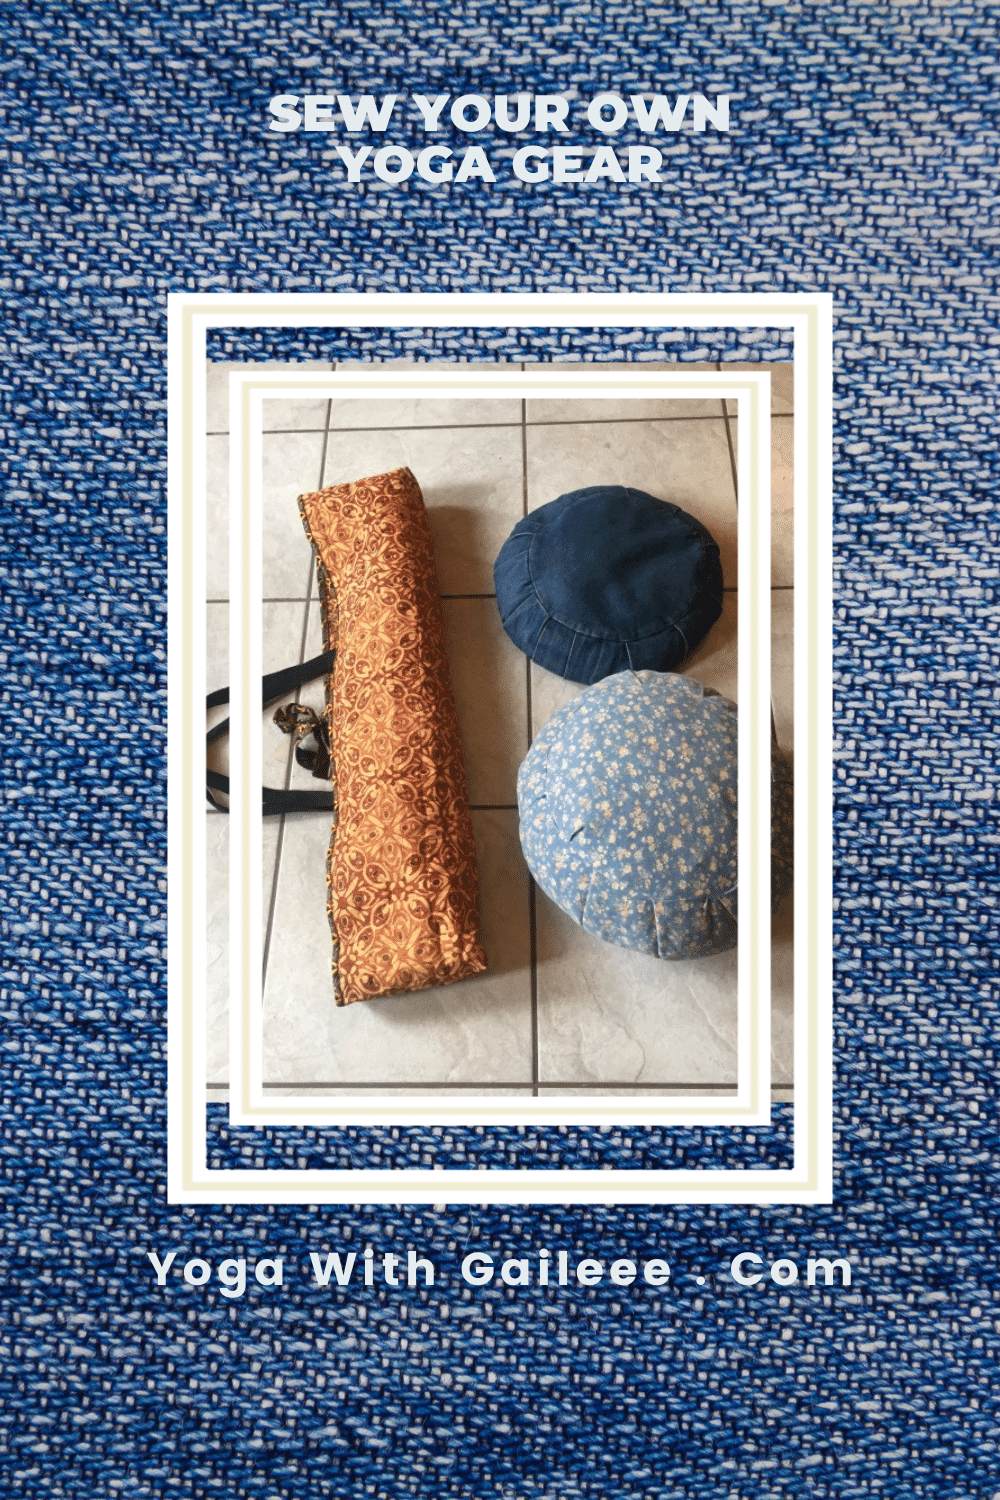 Using my Pfaff and Singer Featherweight Vintage sewing machines, I've made many items for my yoga practice.  Yoga mat bags, bolsters, zafu meditation cushions and eye pillows.  Yoga with Gail.